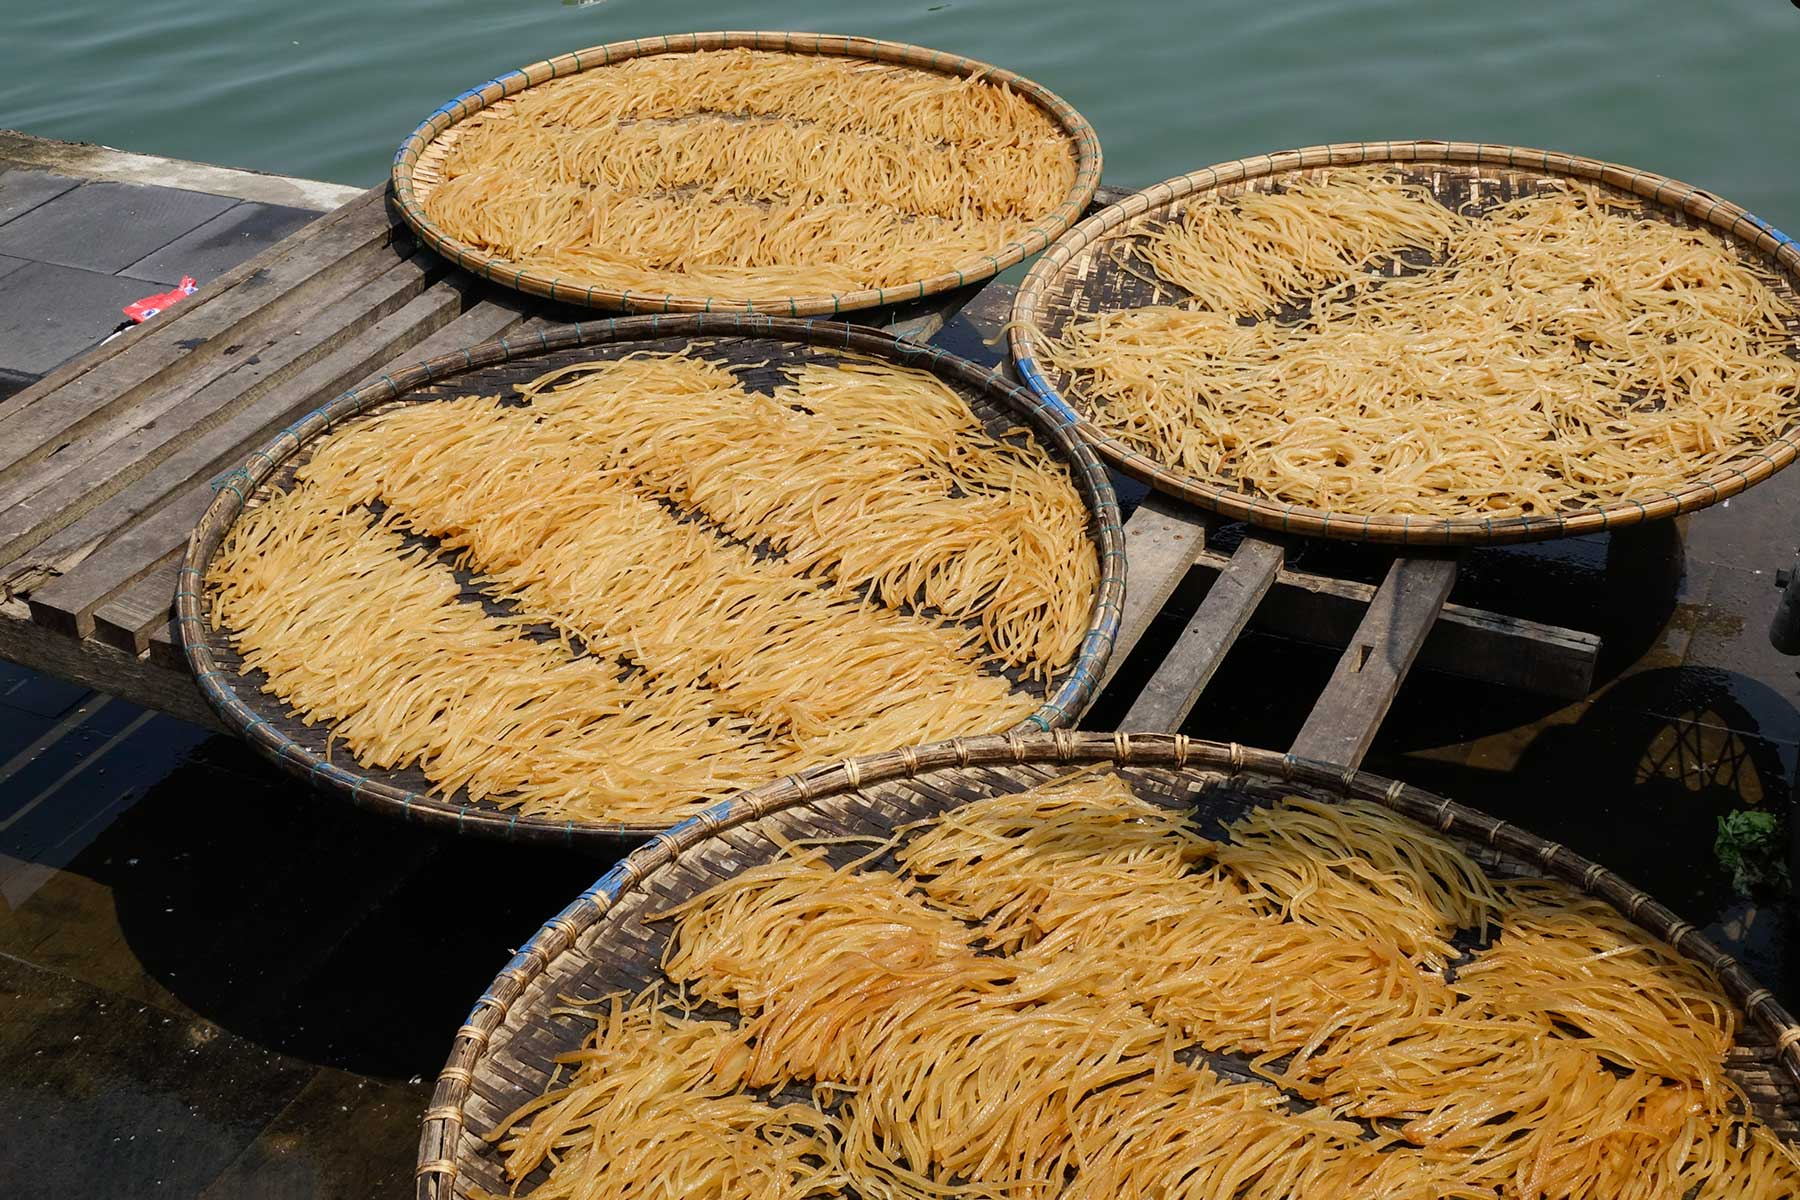 Cao Lau Noodels from Hoi An